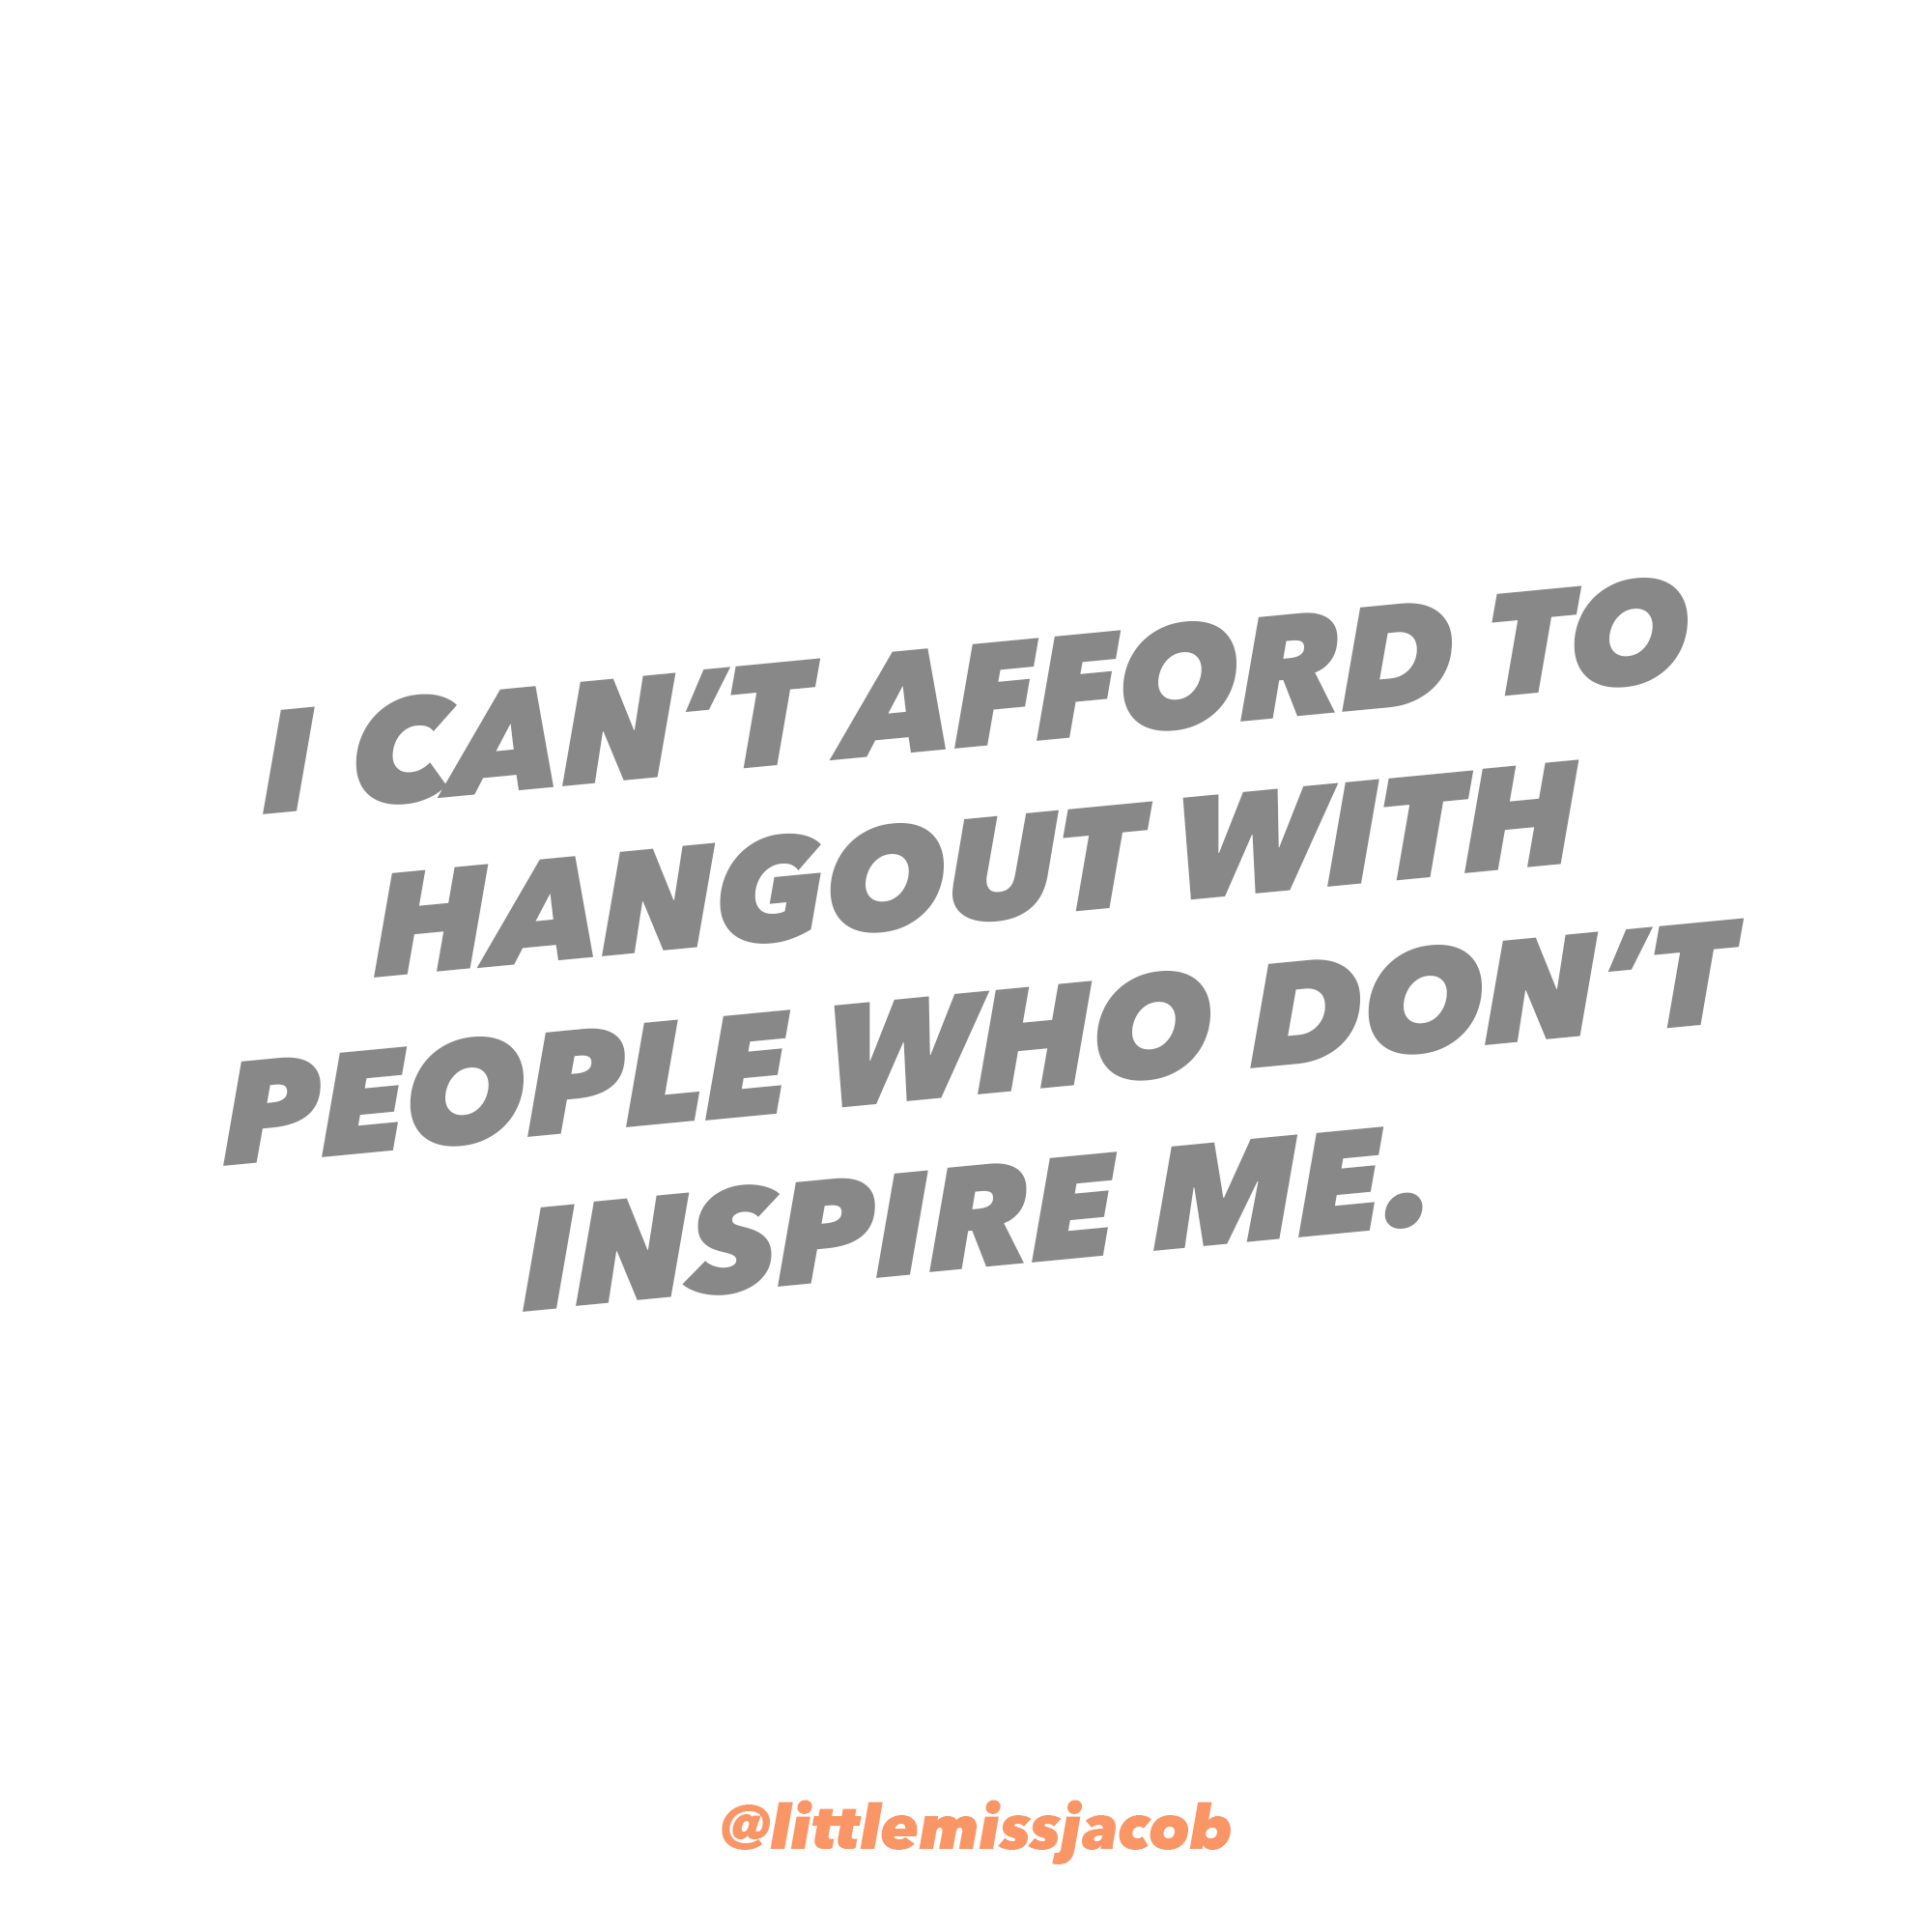 I CanT Afford To Hang Out With People Who DonT Inspire Me